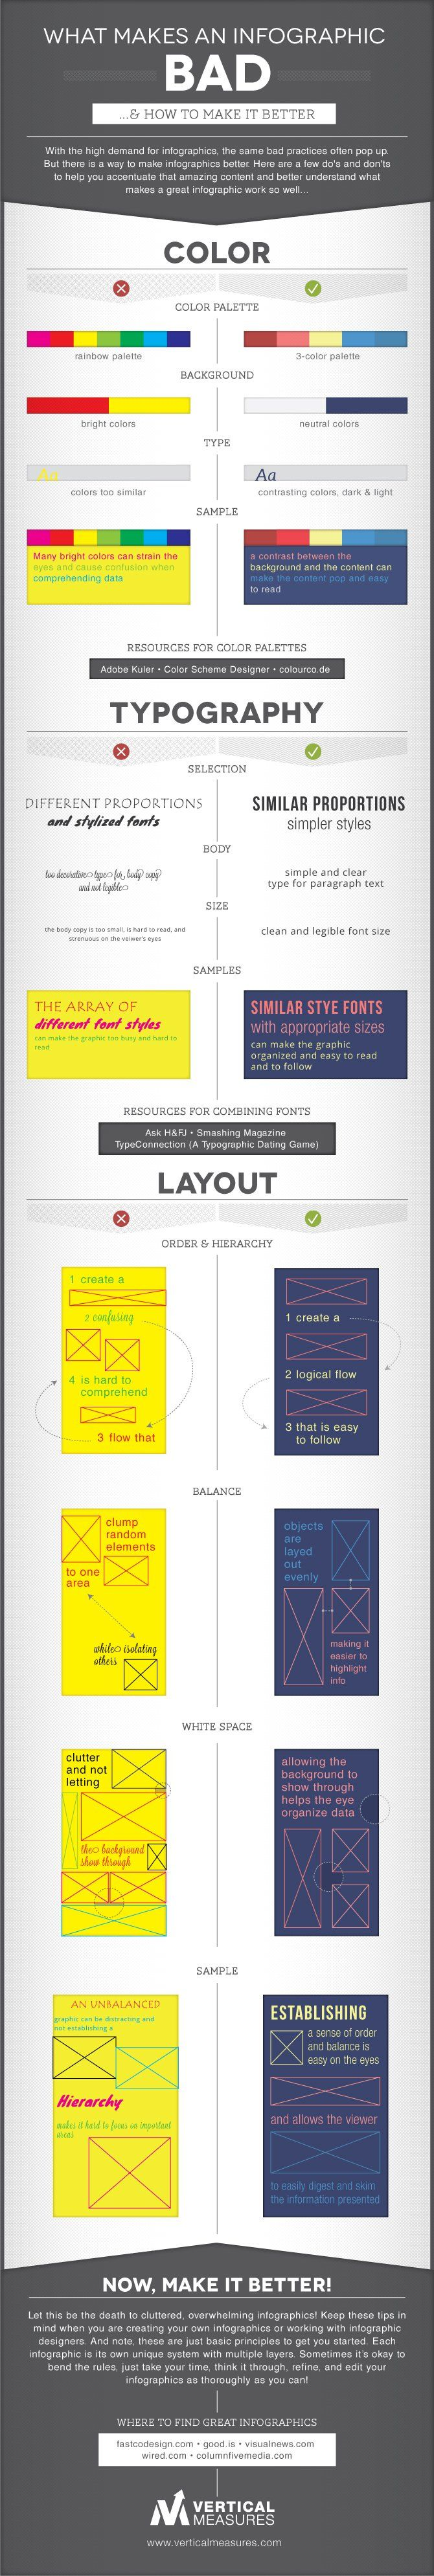 ★ What Makes An #Infographic Bad & How To Make It Better ★ More & more, we see infographics all over the web. Infographics are a great way to show complex data in a simplified manner, or to tell a story in a fun way. However, not all infographics are created equal and we see more bad habits evolving all the time. Below are some #tips to help you get started. These basic principles will help build a clear & clean infographic that will let your content shine!